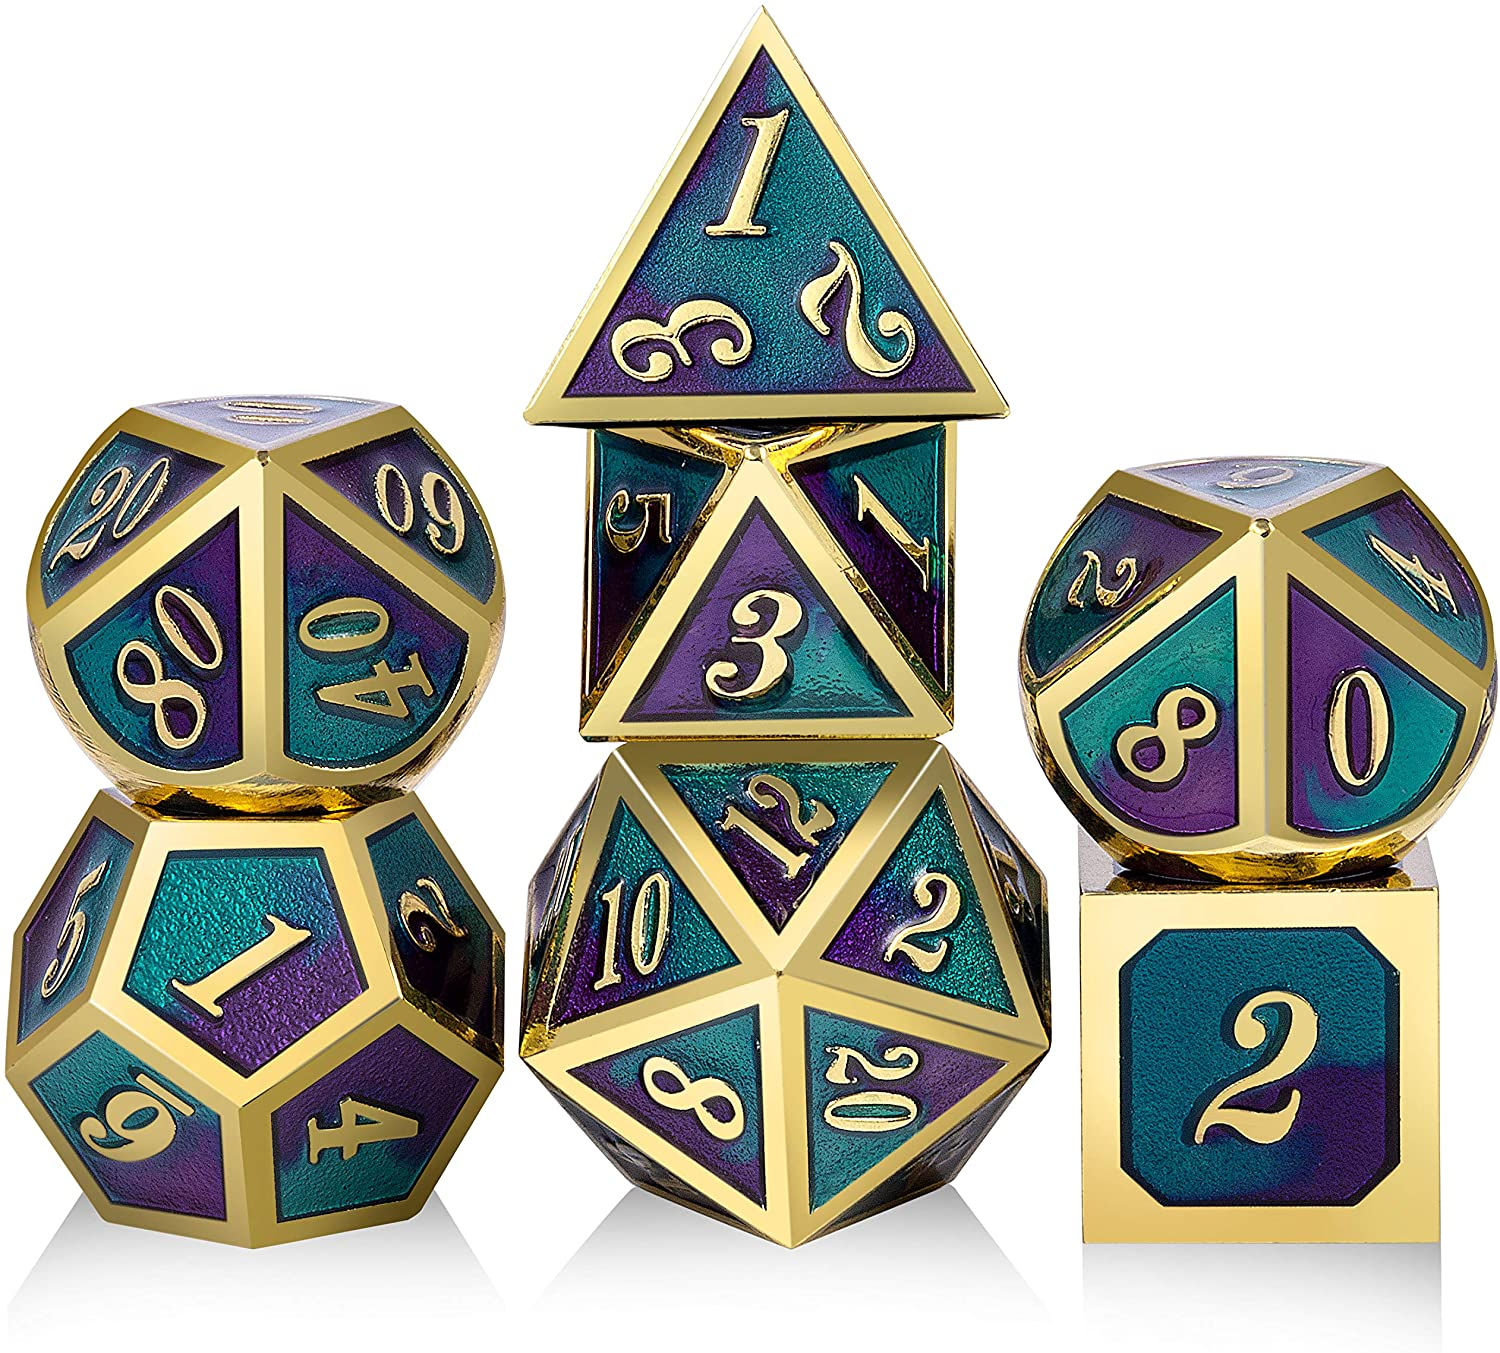 Double Colors Metal DND Dice,DNDND Polyhedral Metal Game Dice for D&D Role Playing Game Dugeons and Dragons(Blue and Purple with Golen Number)